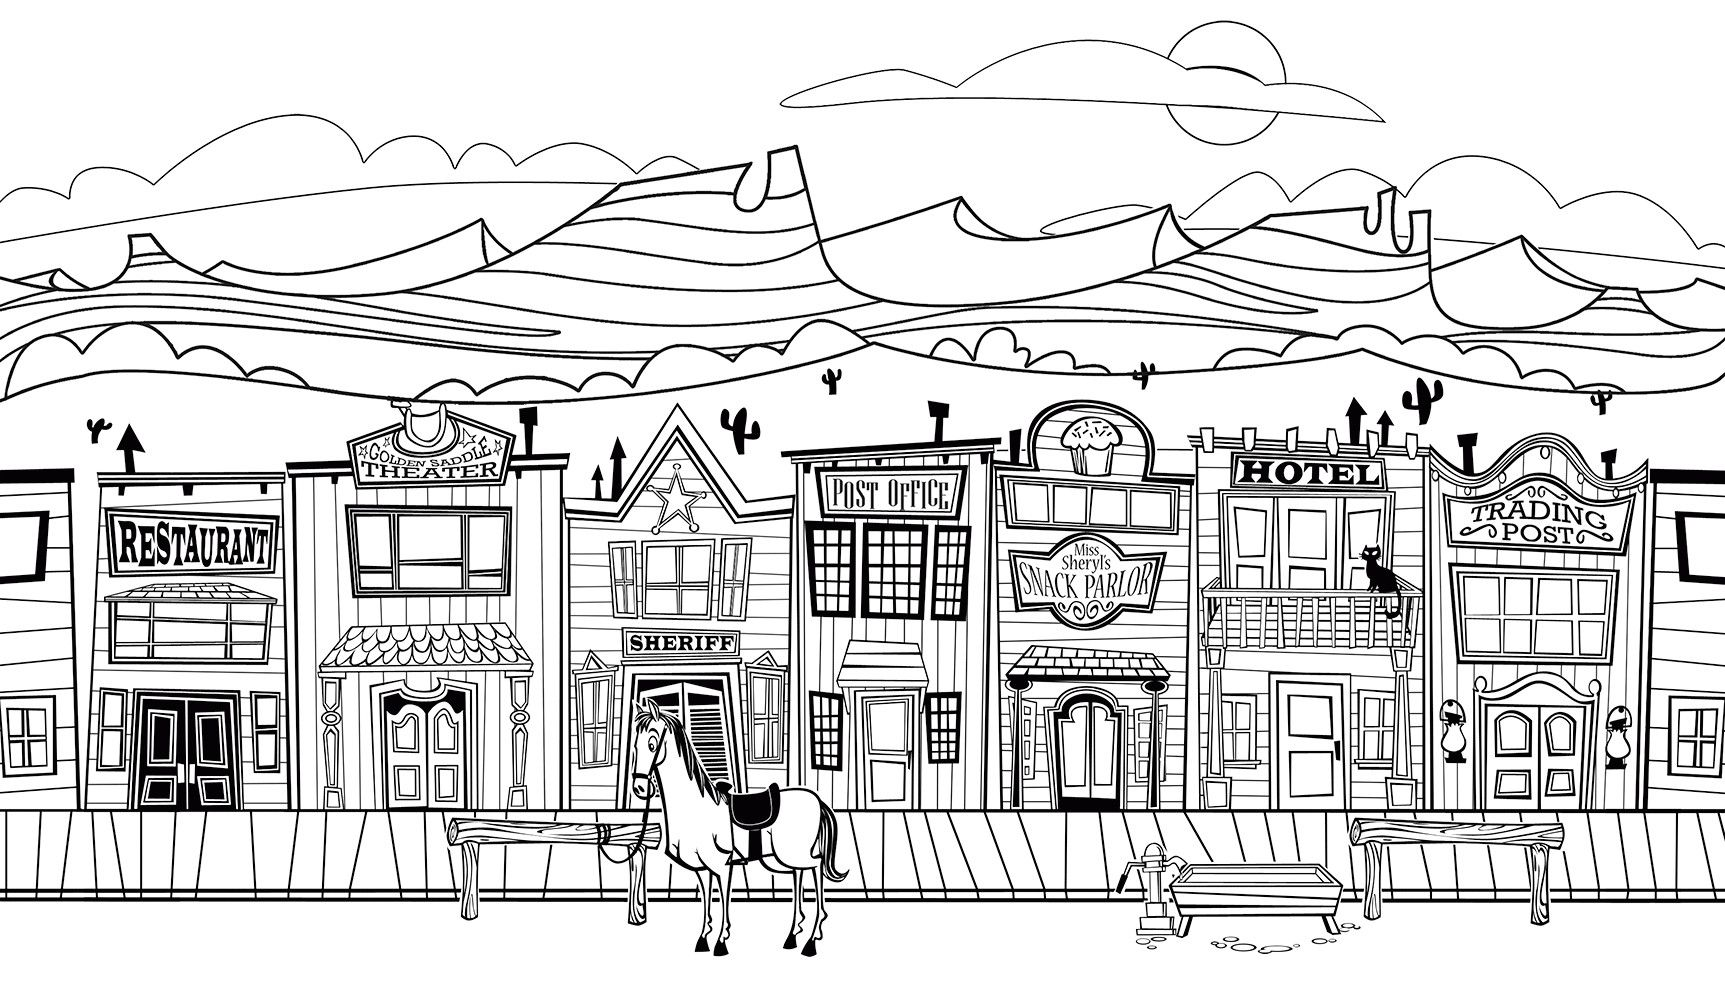 City Coloring Pages Best Coloring Pages For Kids Coloring Pages Coloring Pages For Kids Town Drawing